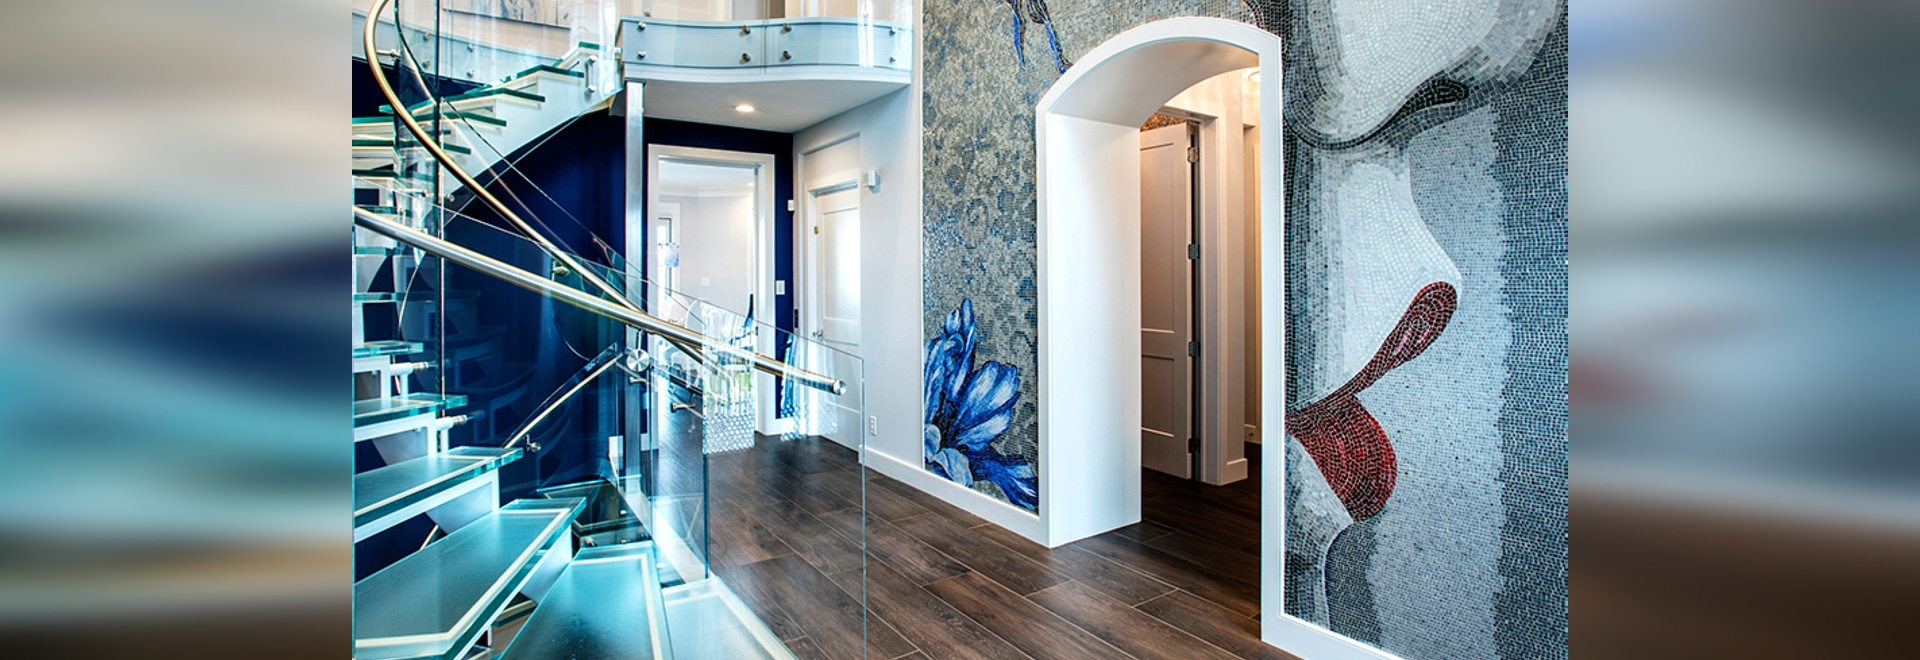 Thermoformed glass stair treads